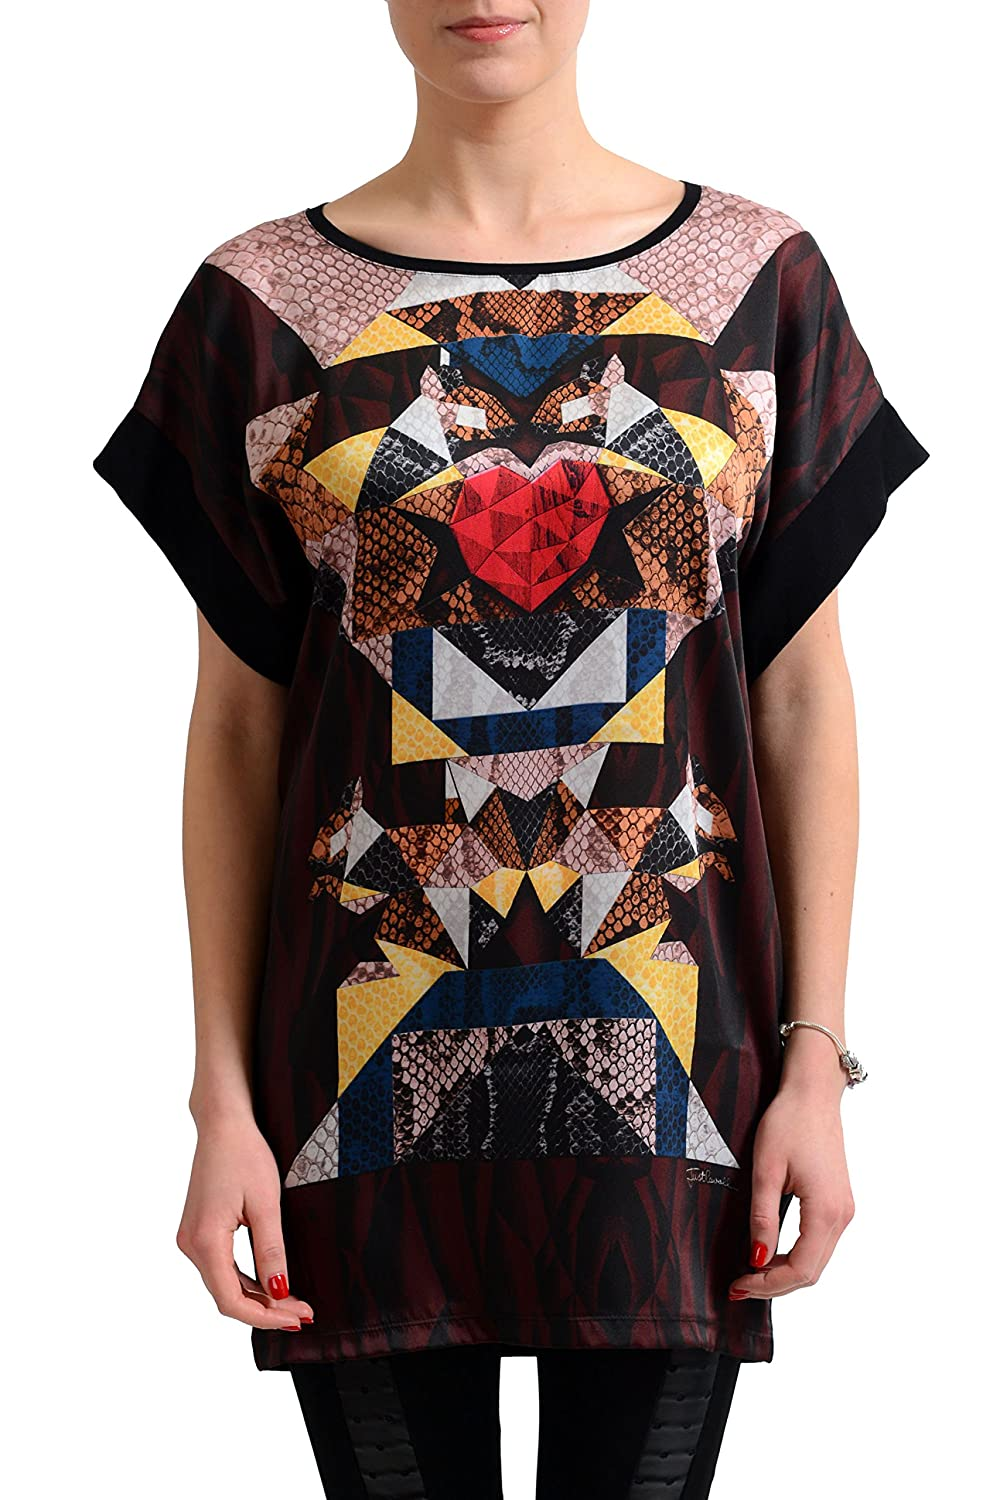 Just Cavalli Women's Multi-Color Short Sleeve Tunic Blouse Top US S IT 40